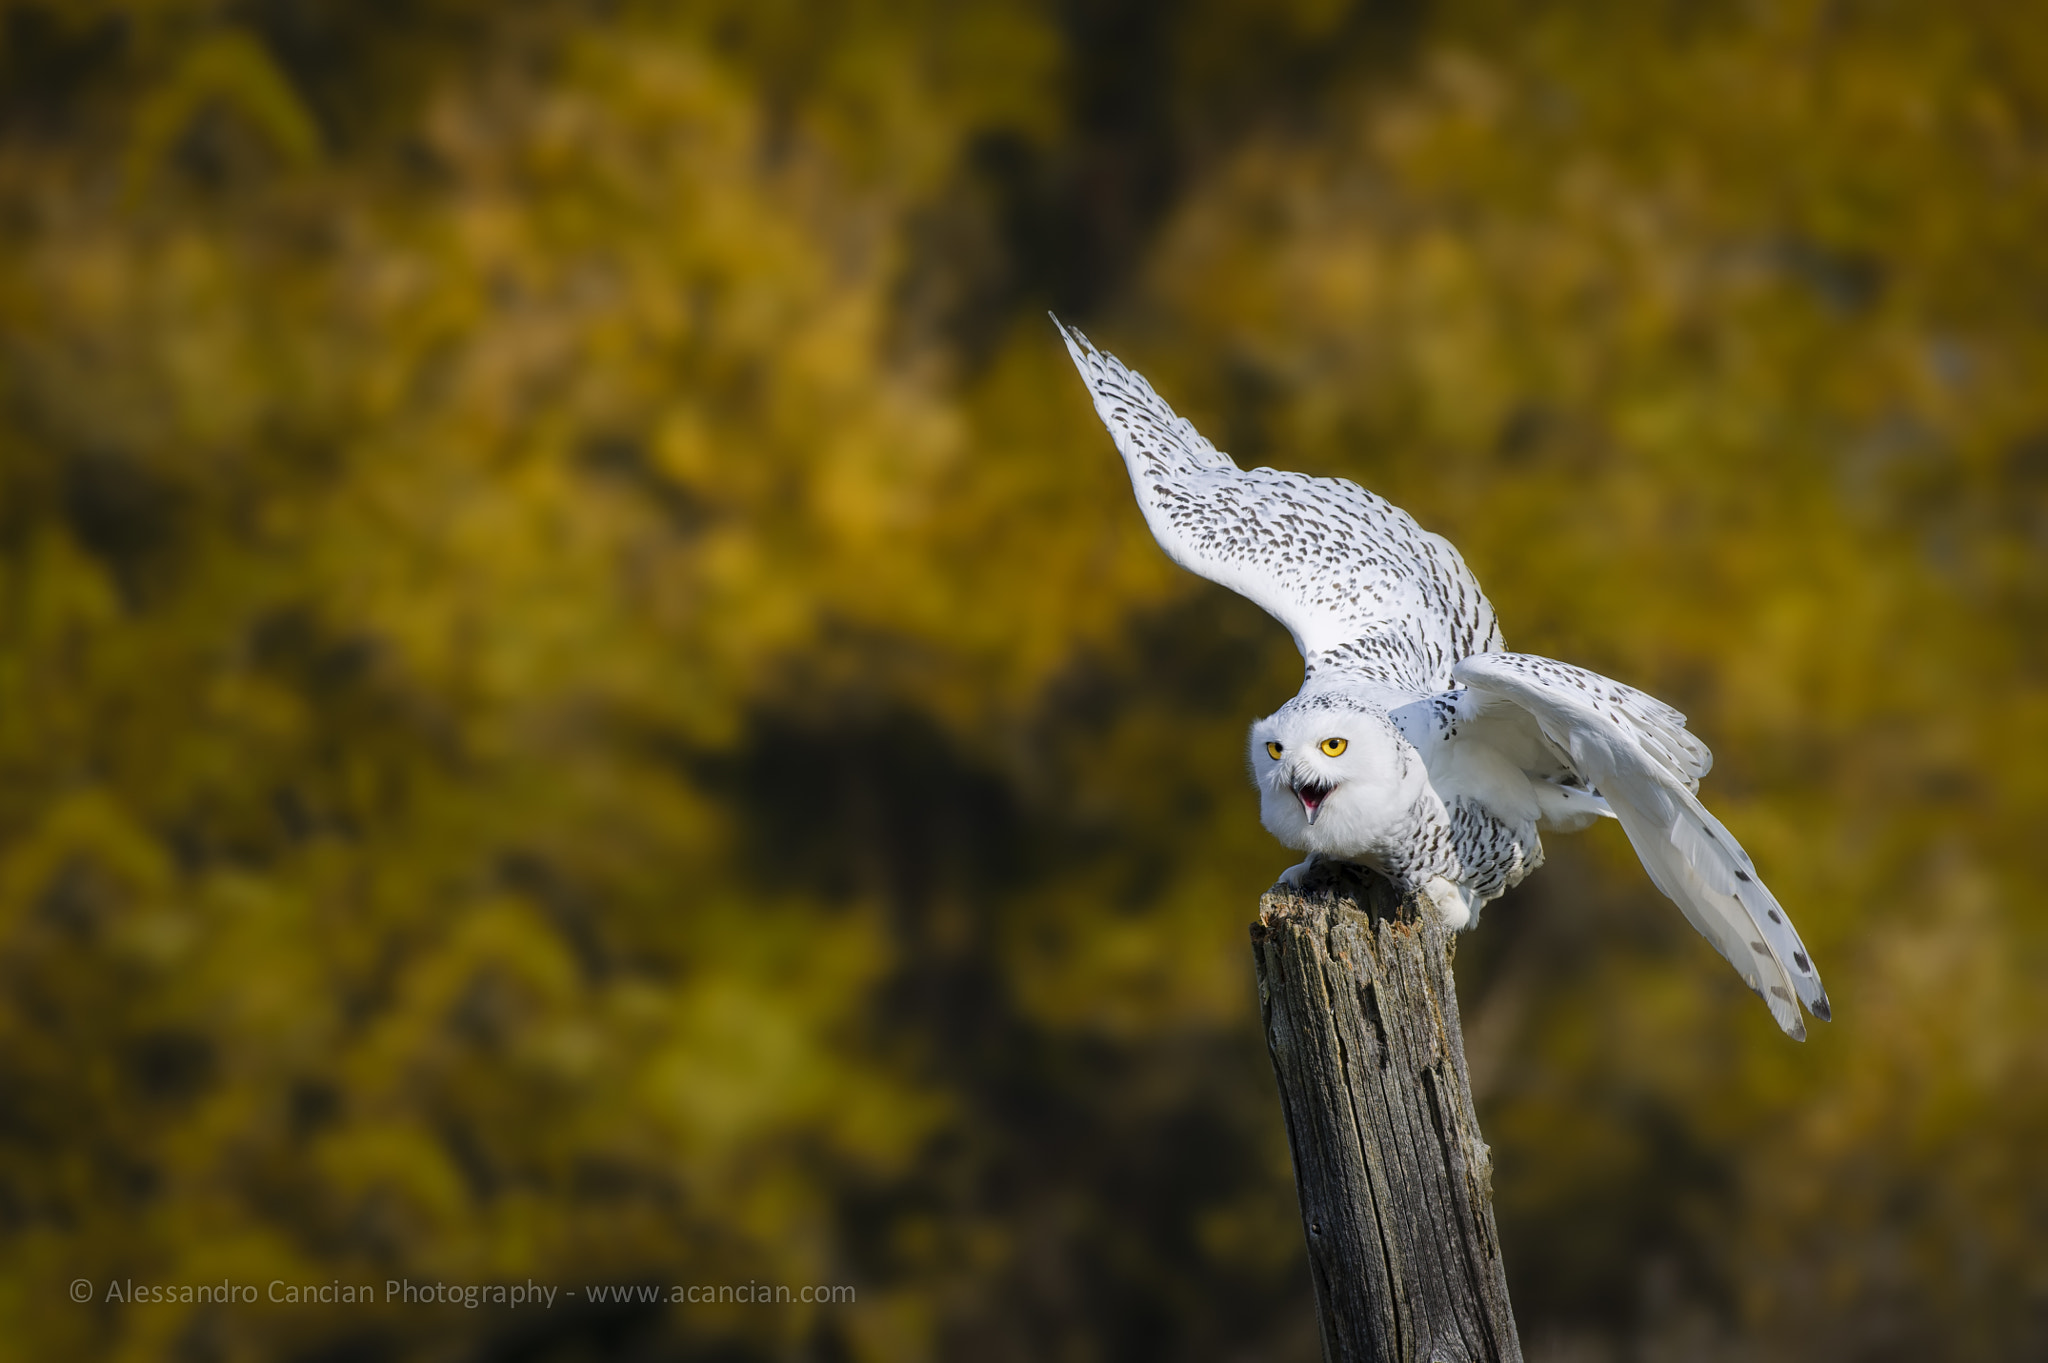 Photograph Ready for takeoff! by Alessandro Cancian on 500px